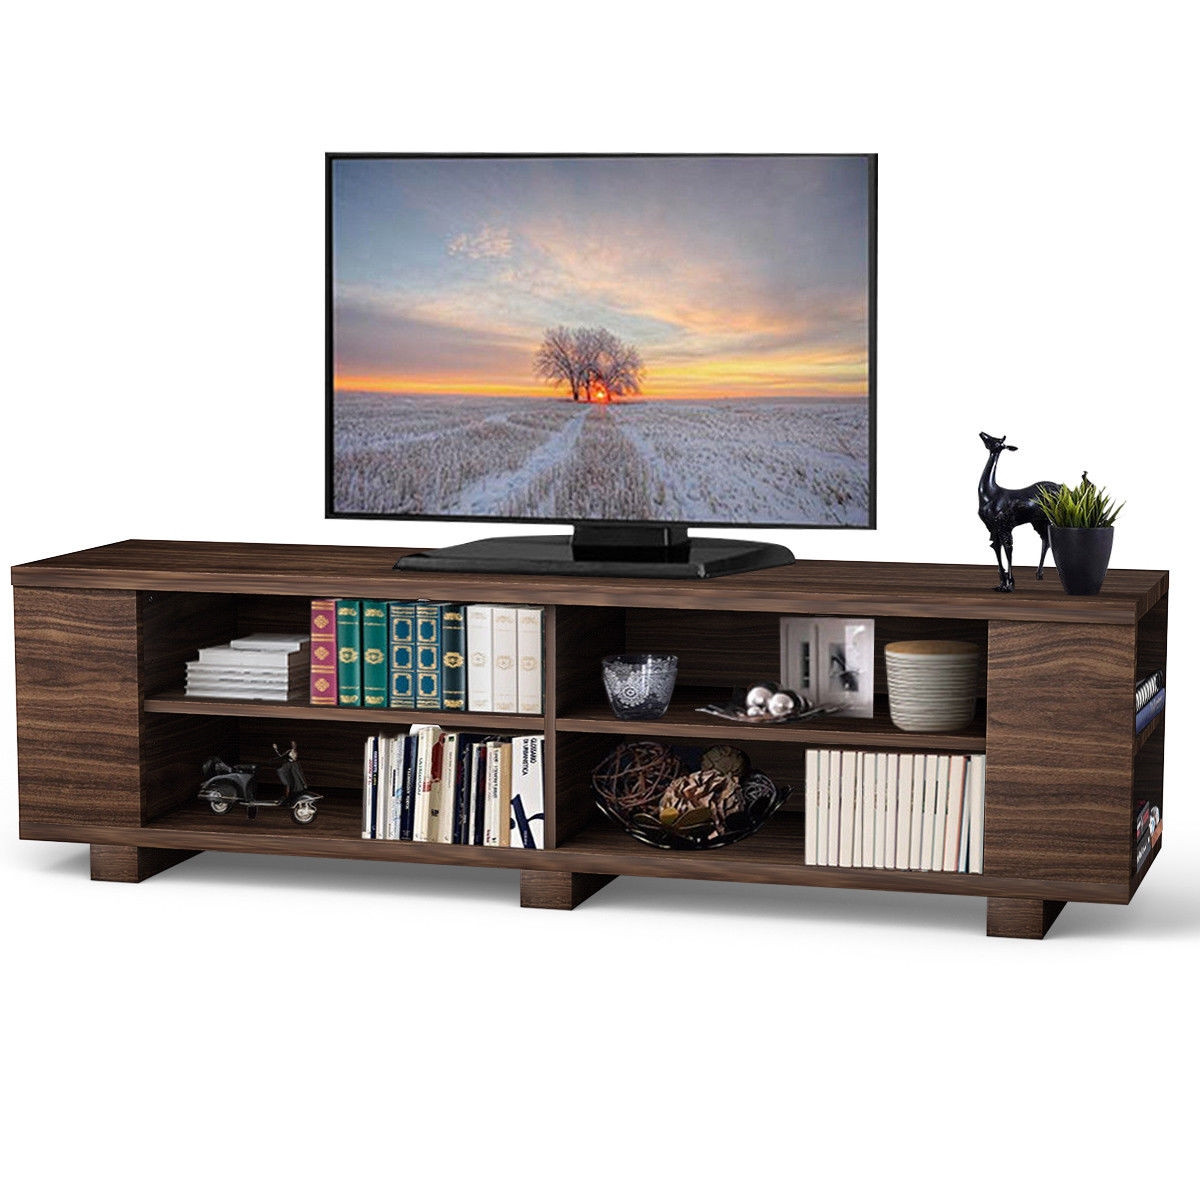 "59"" Console Storage Entertainment Media Wood TV Stand HW60170"